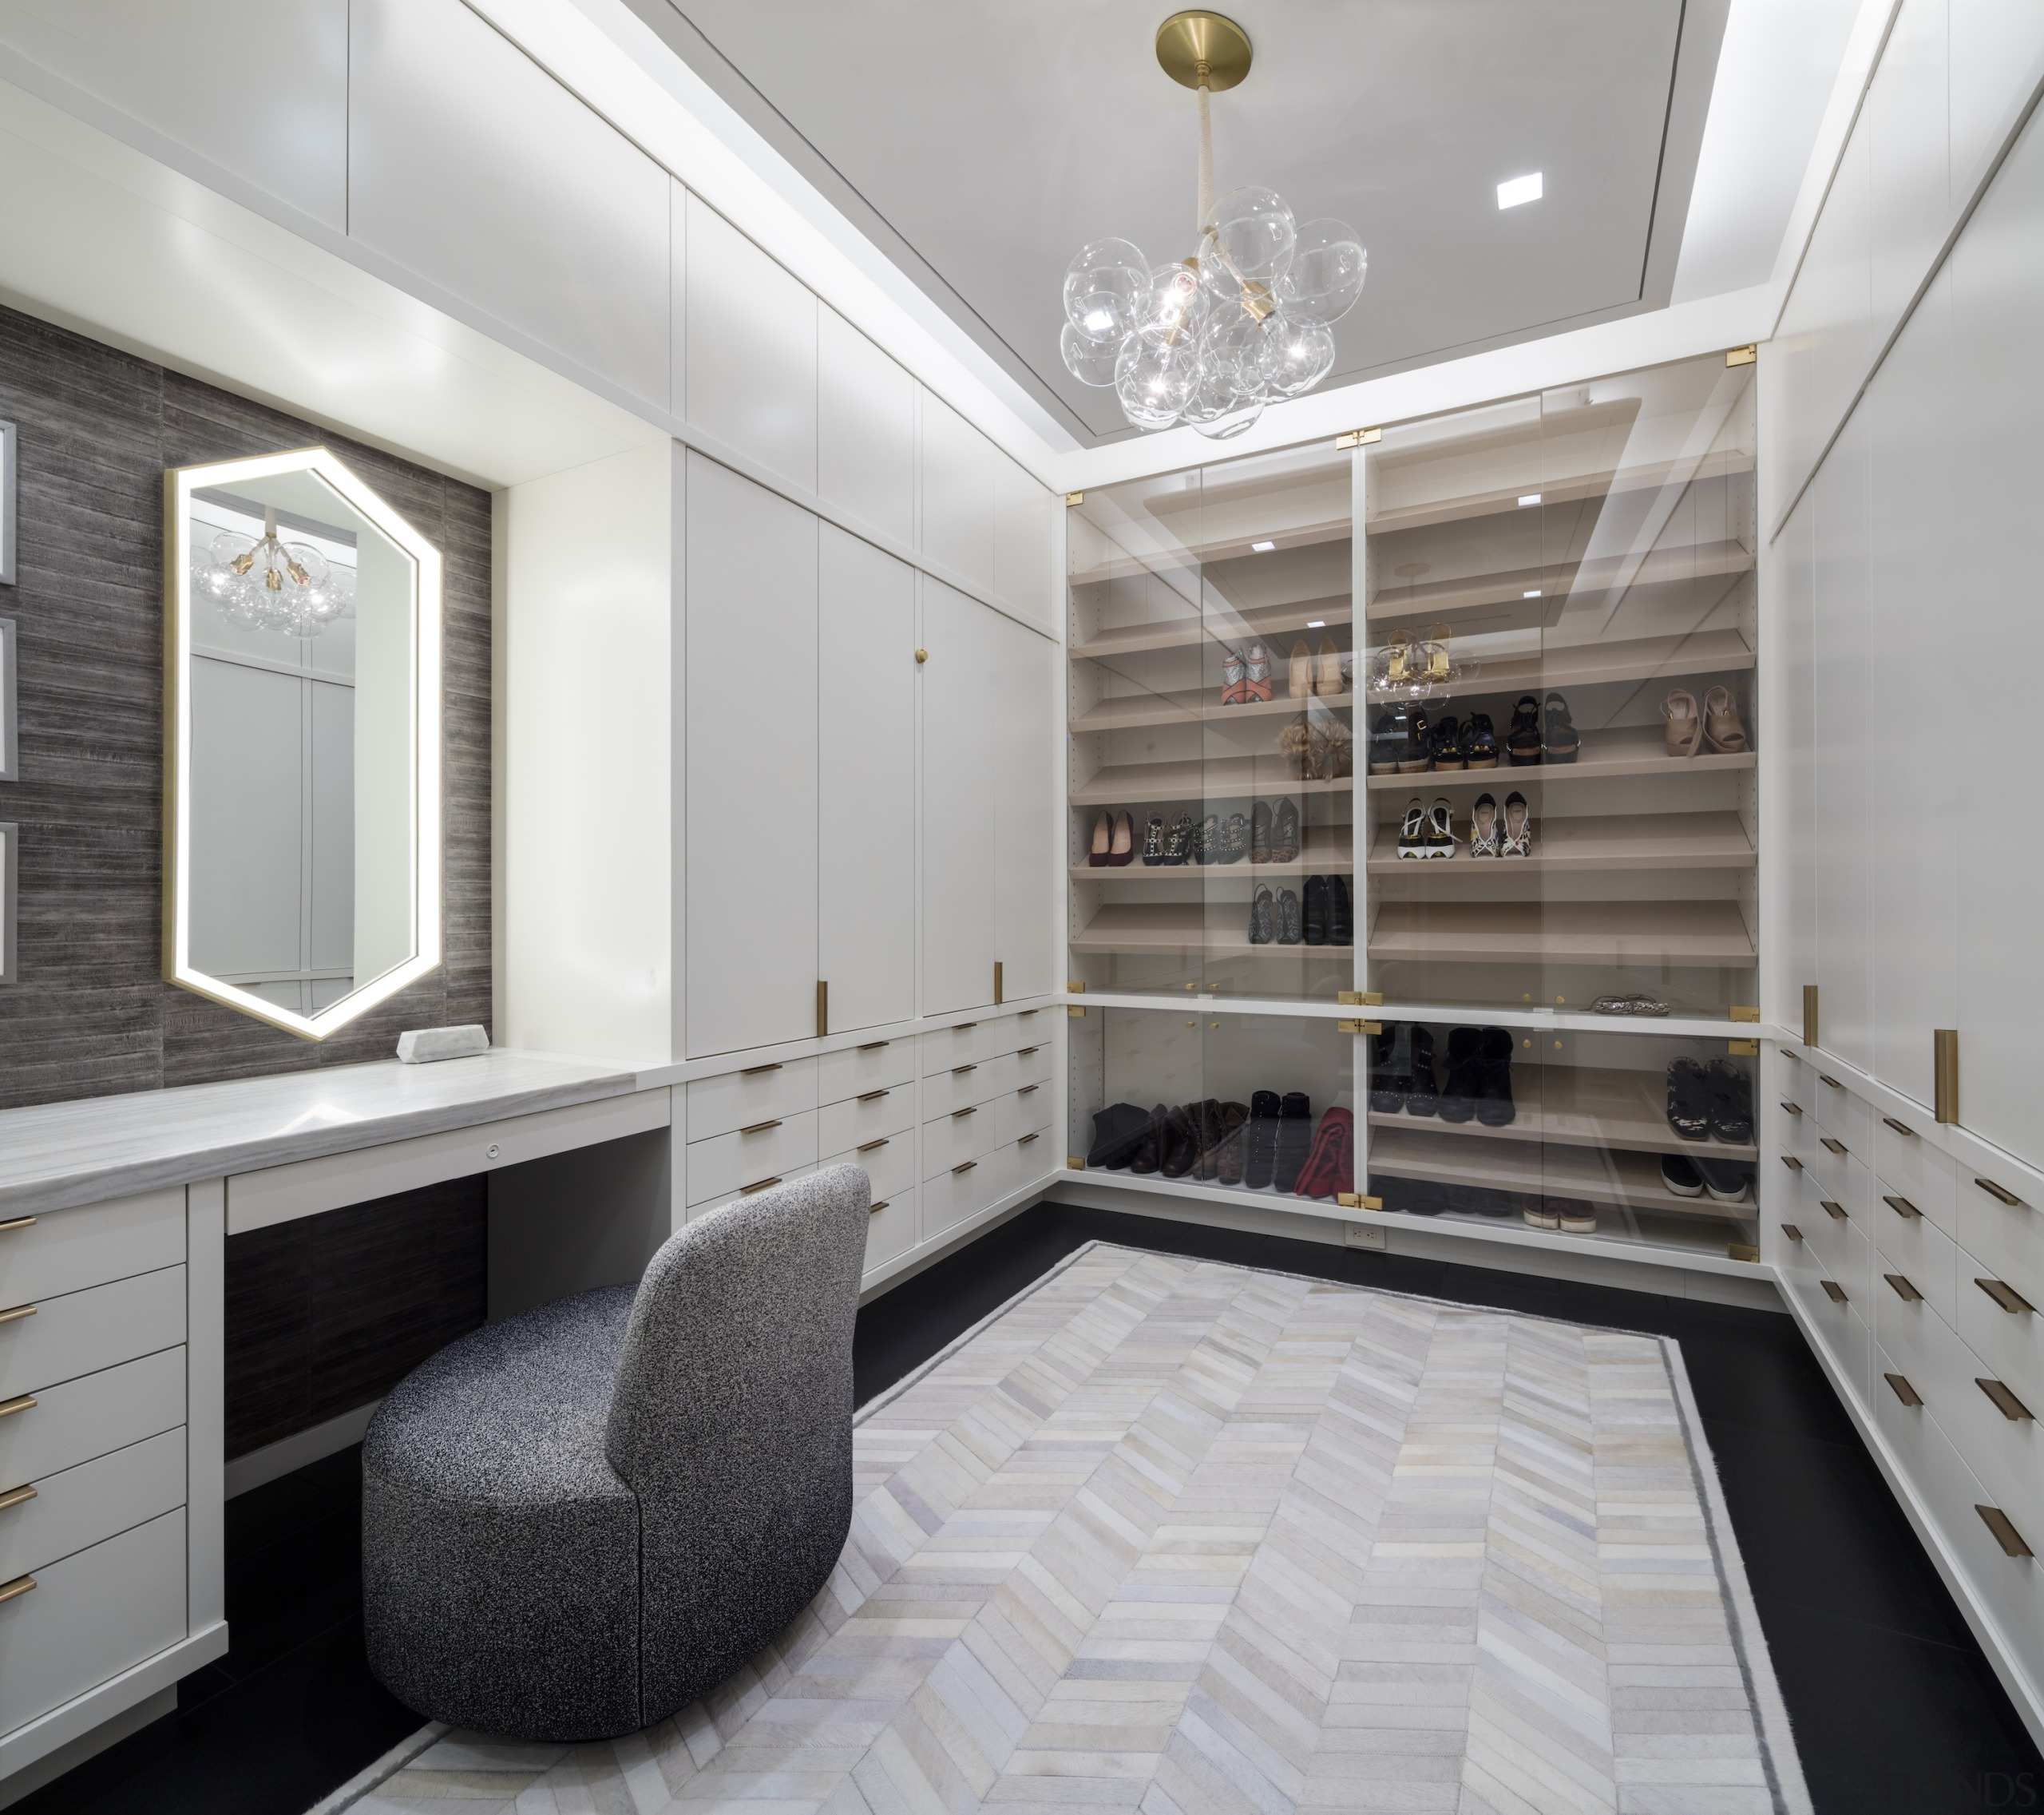 The master suite dressing room that has everything